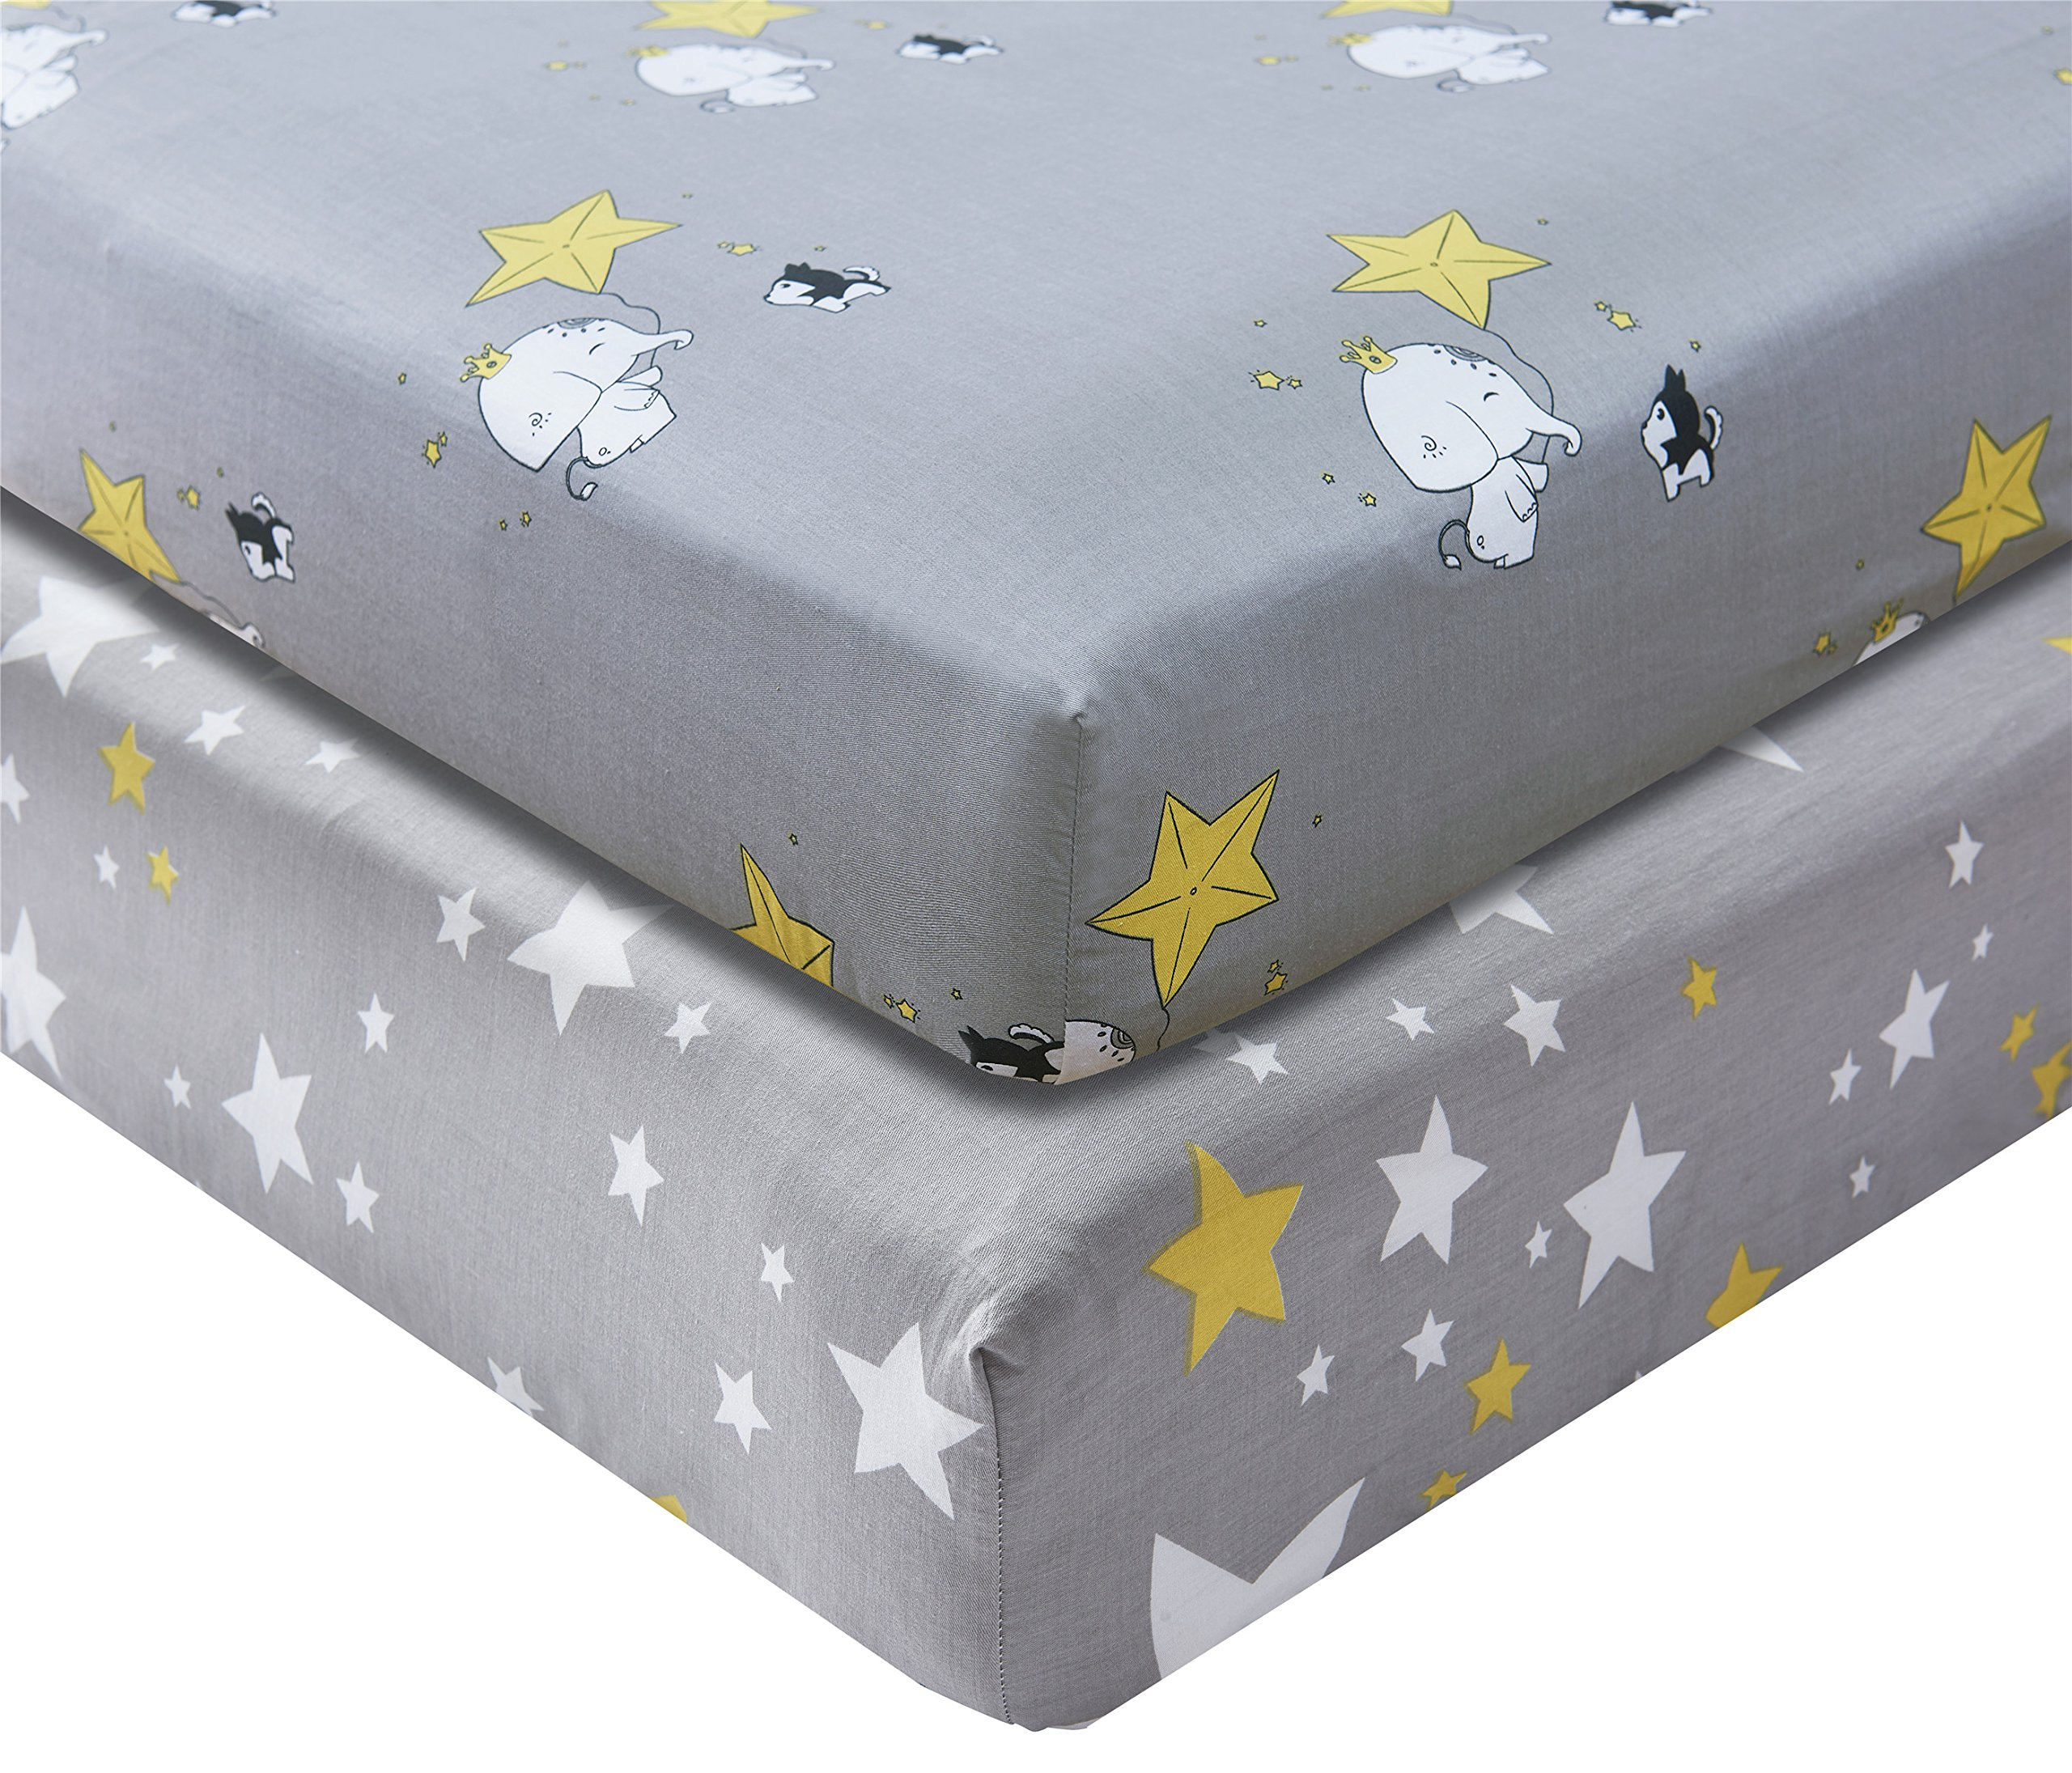 Kachabros 100% Cotton Crib Sheets Nursery Bedding for Boy 2 Pack Soft in Gray with Elephant Dog and Yellow Stars